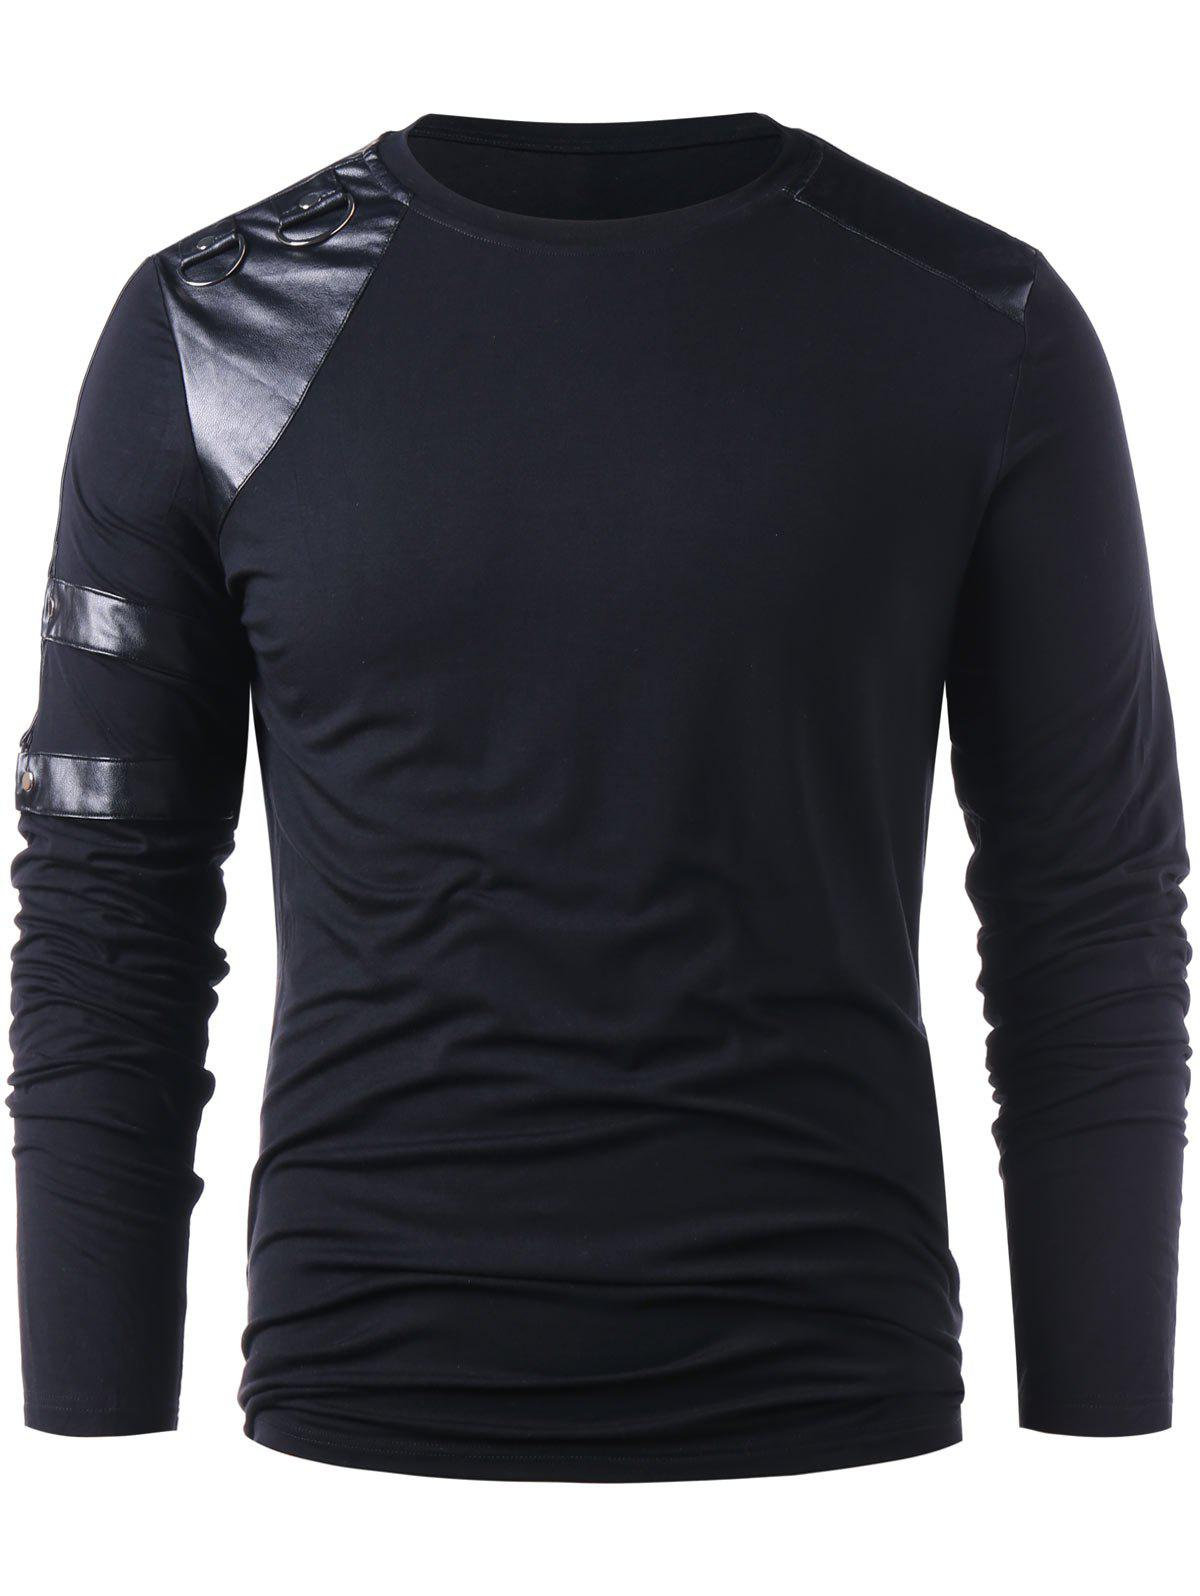 Fancy PU Leather Panel Long Sleeve T-shirt